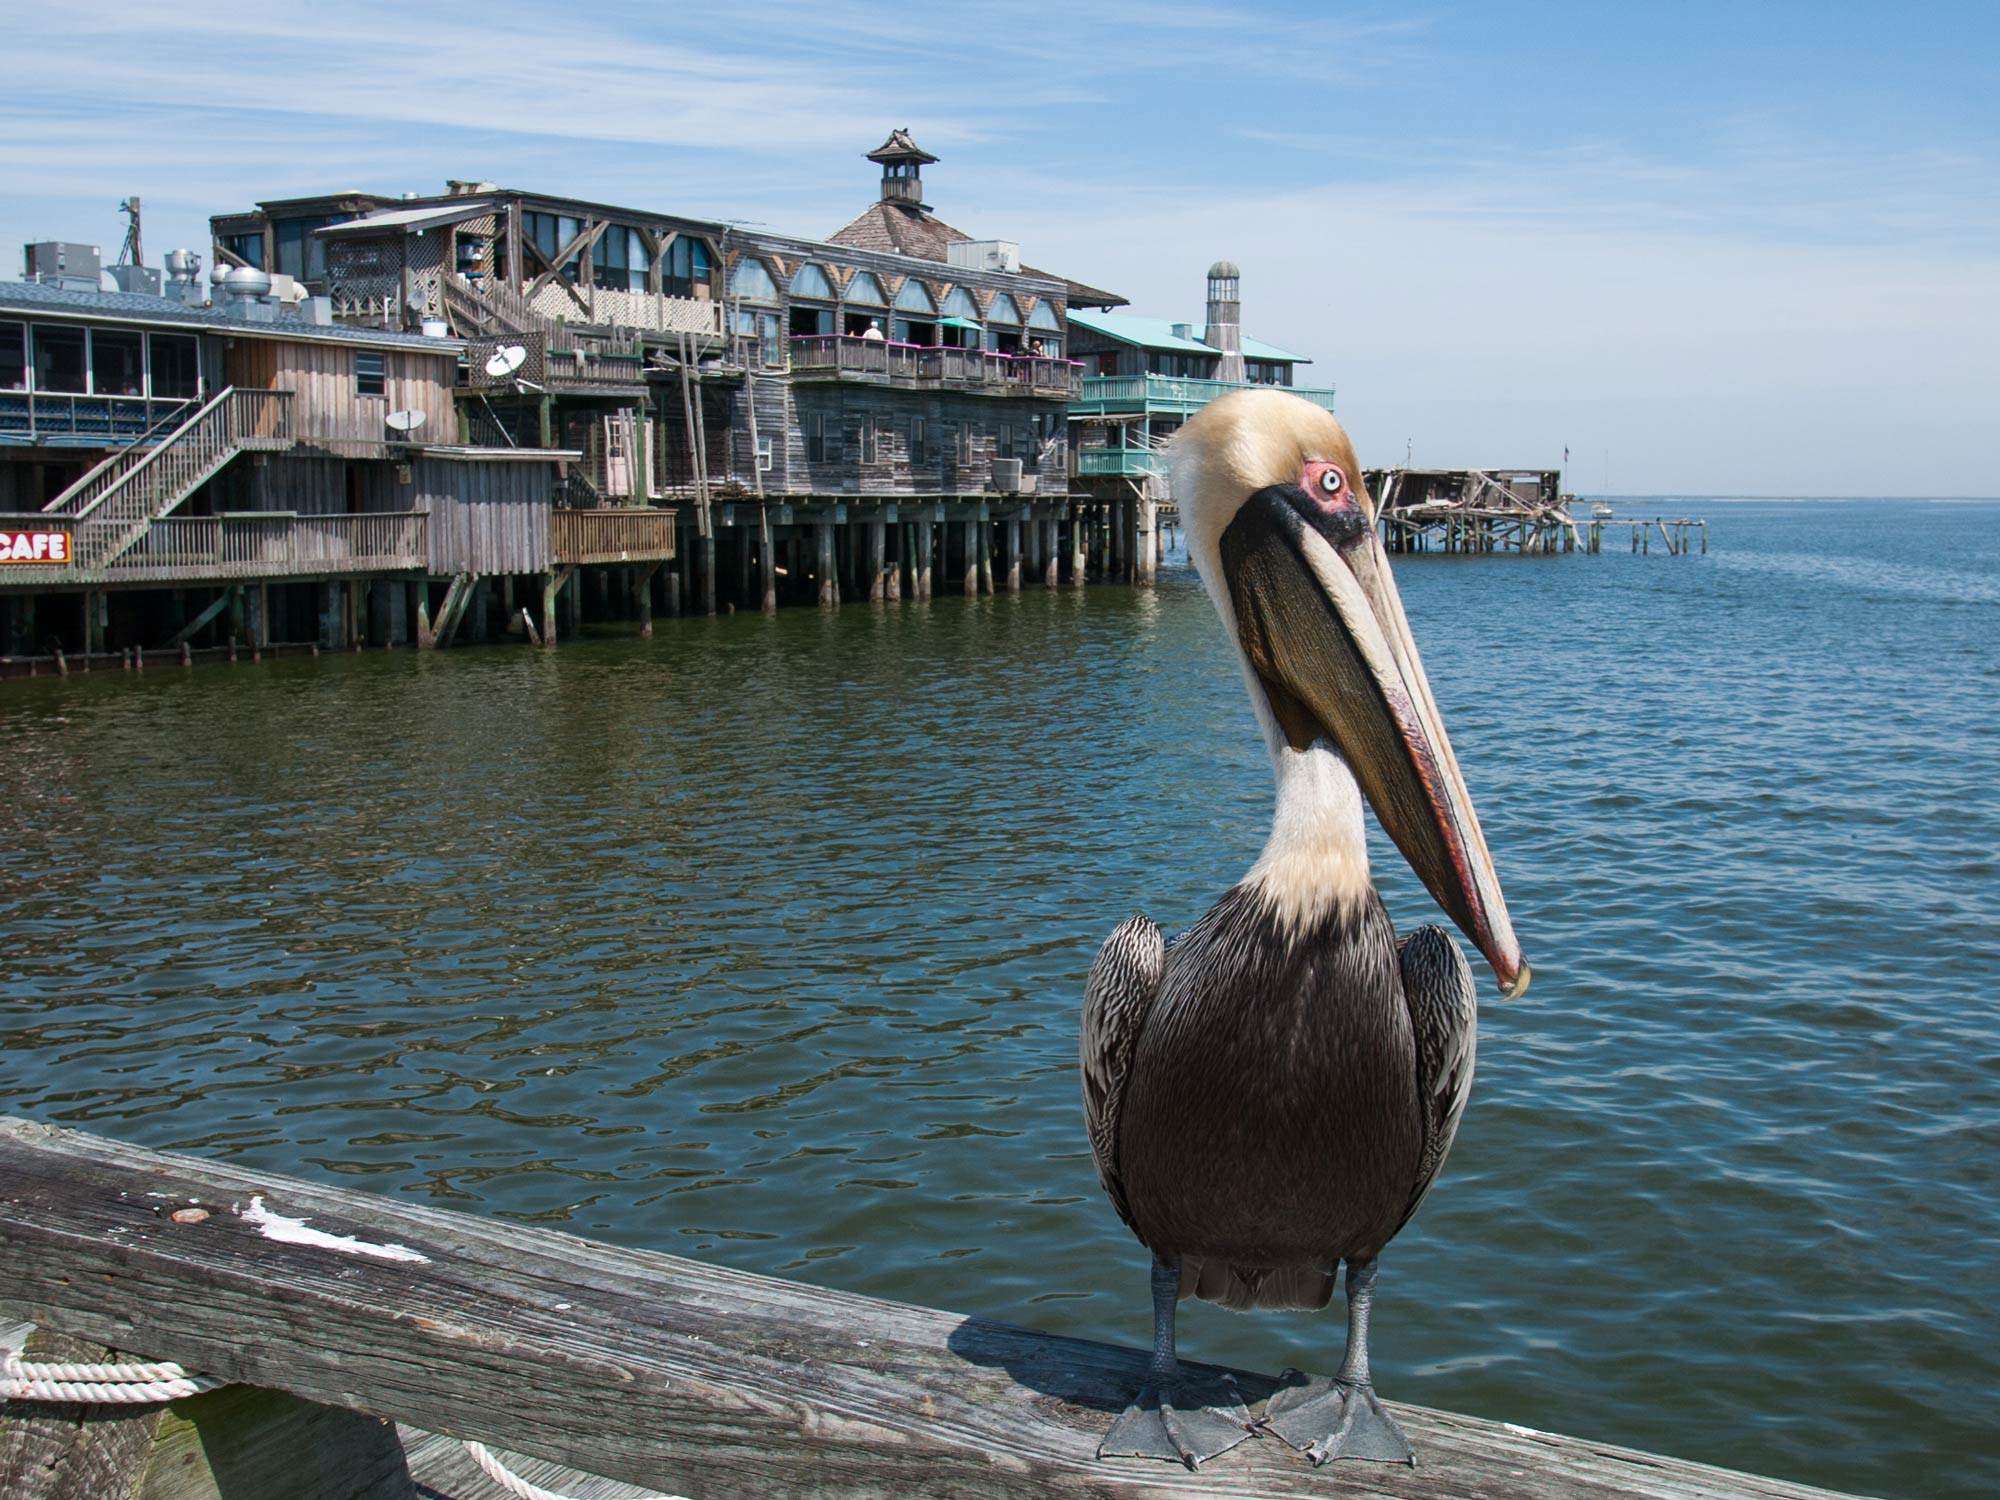 Brown pelican on a fence with the Cedar Key waterfront in the background